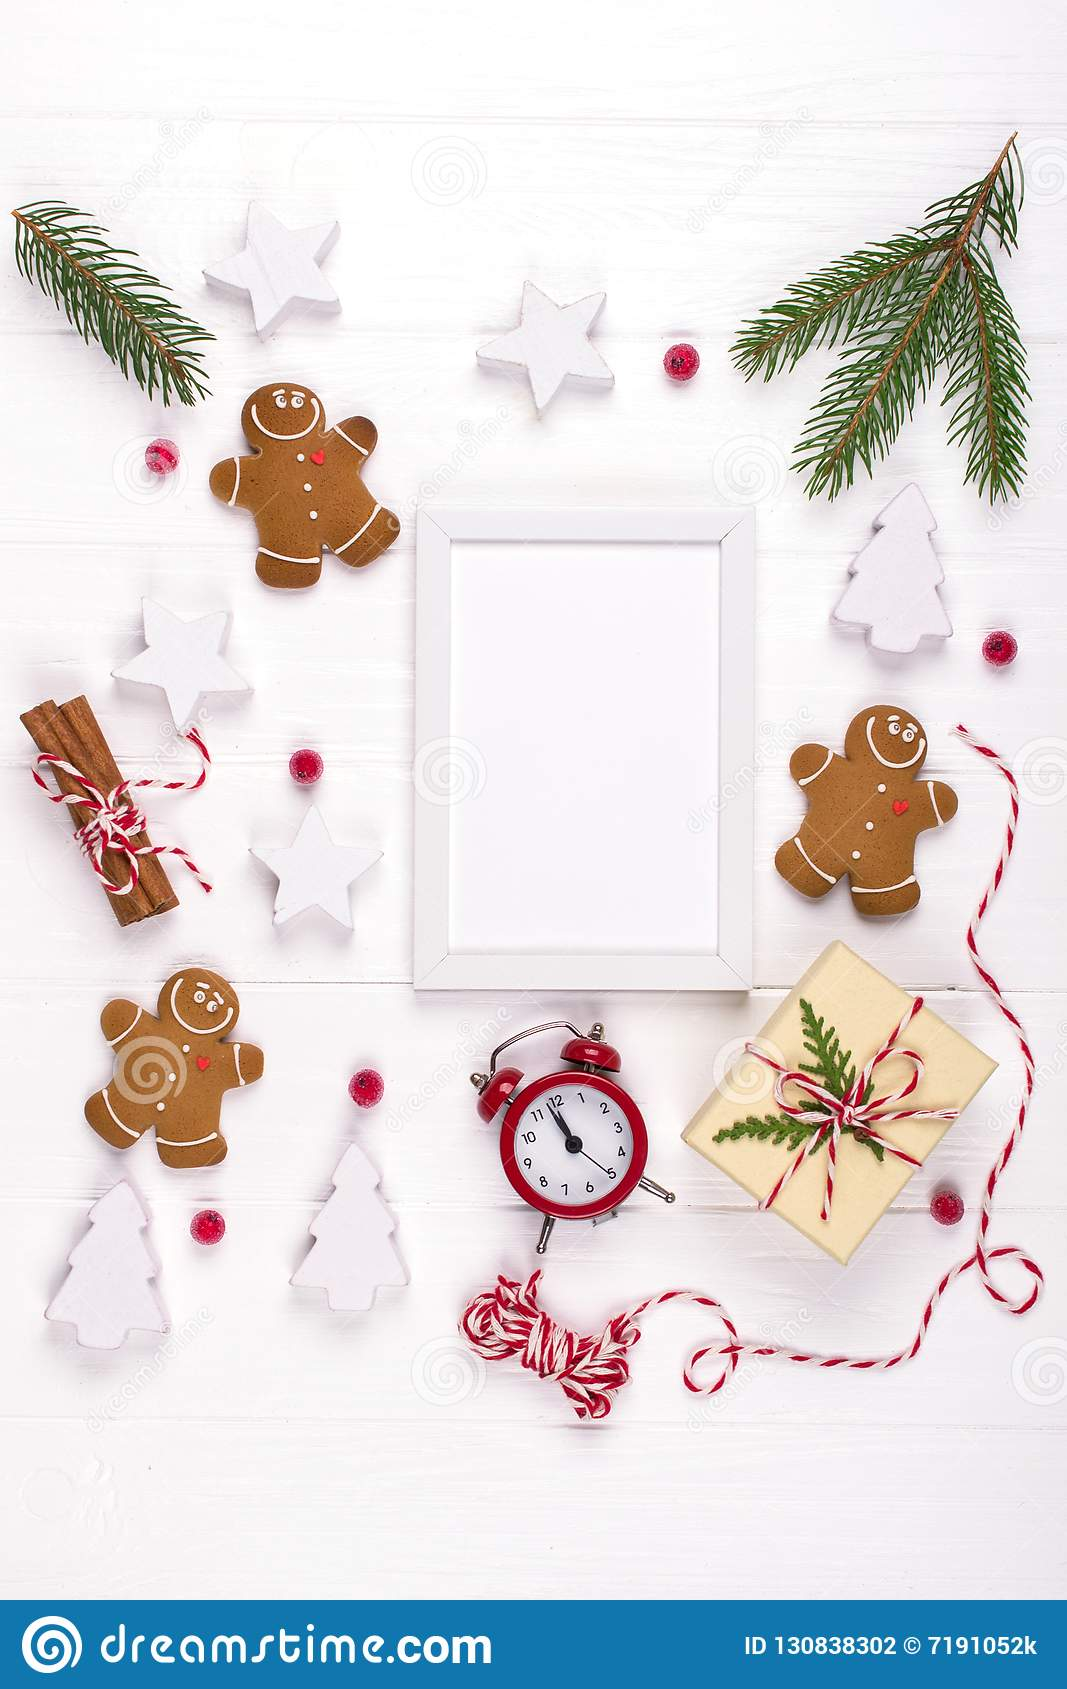 Christmas composition. Christmas gifts, decor, fir tree branches gingerbread man cookies . Winter holidays concept.